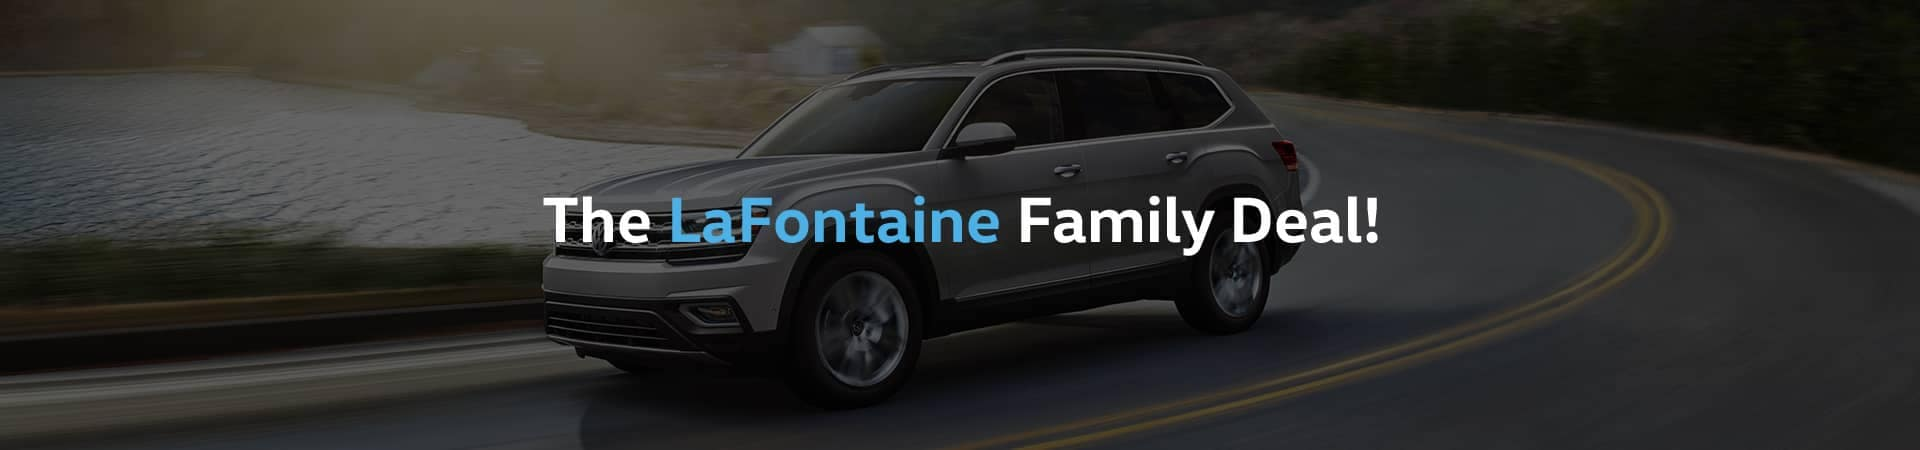 The LaFontaine Family Deal!